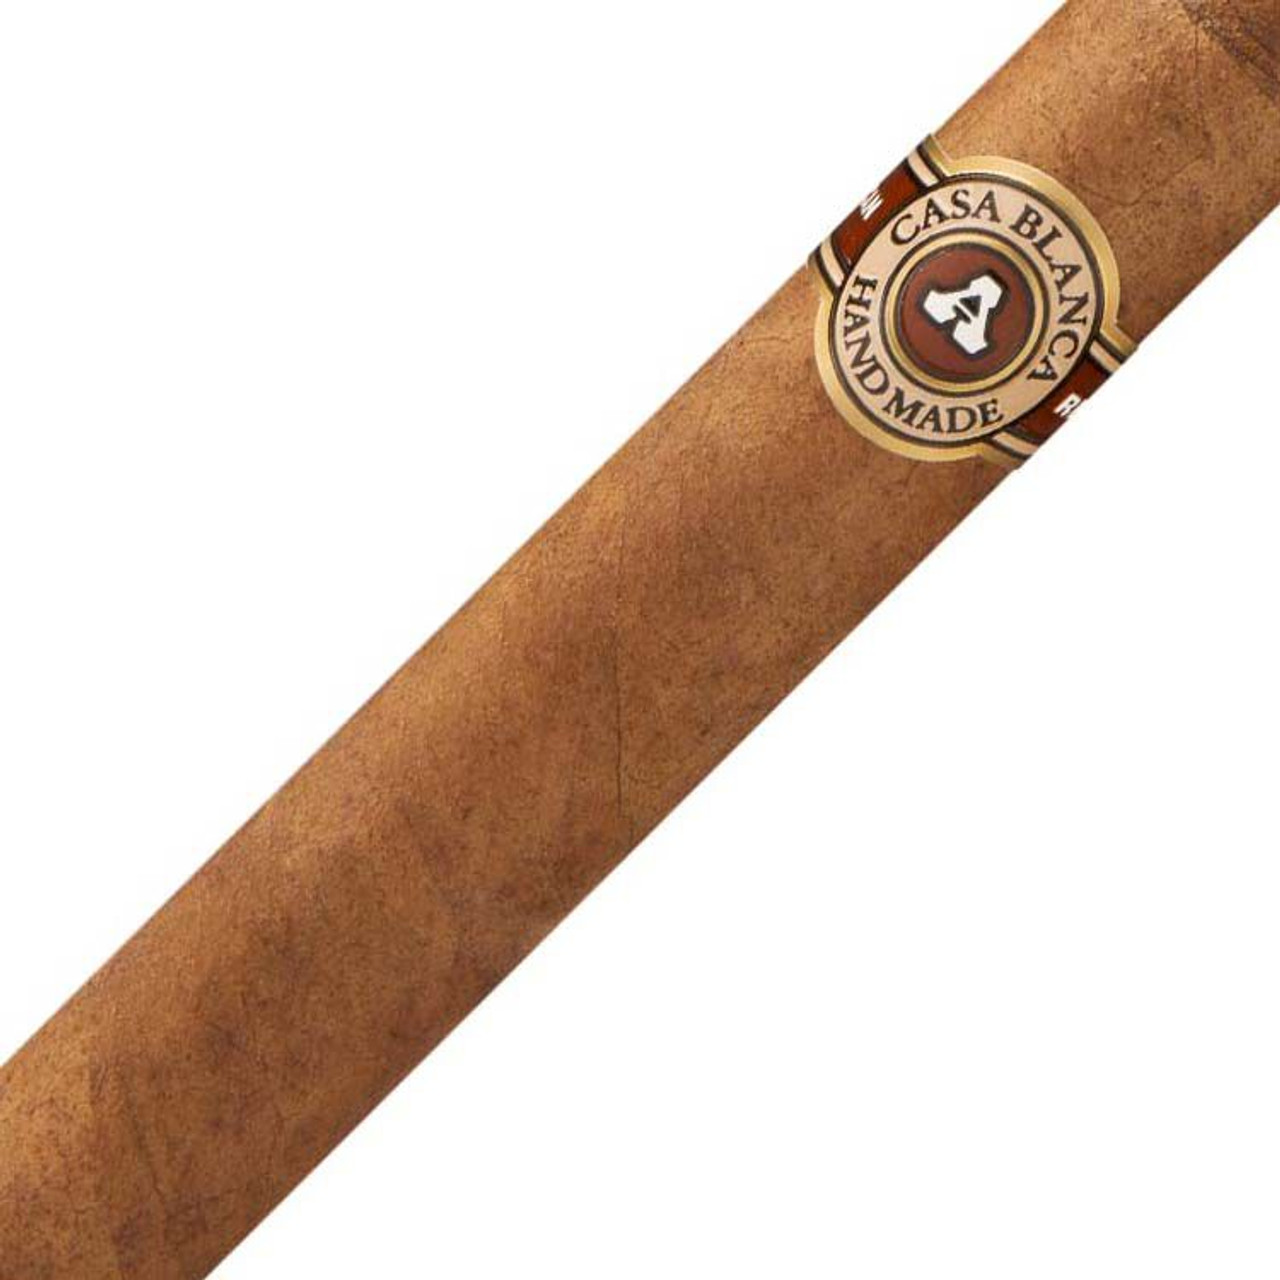 Casa Blanca Robusto Cigars - 7.5 x 50 (Pack of 5)